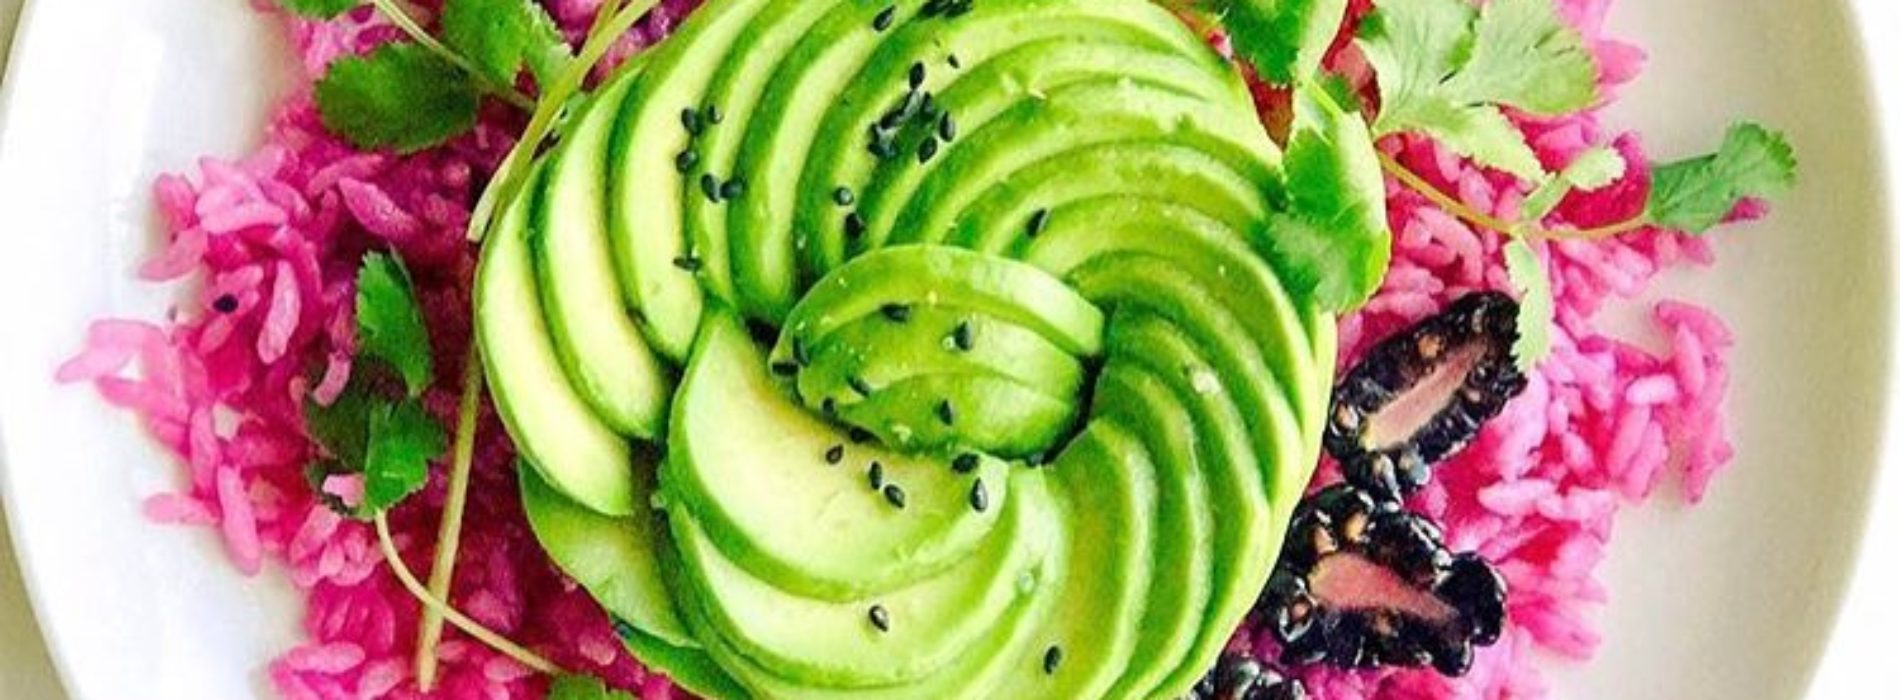 Avocado mania in Rome, five places where you can eat (and drink) the fruit in gourmet-style